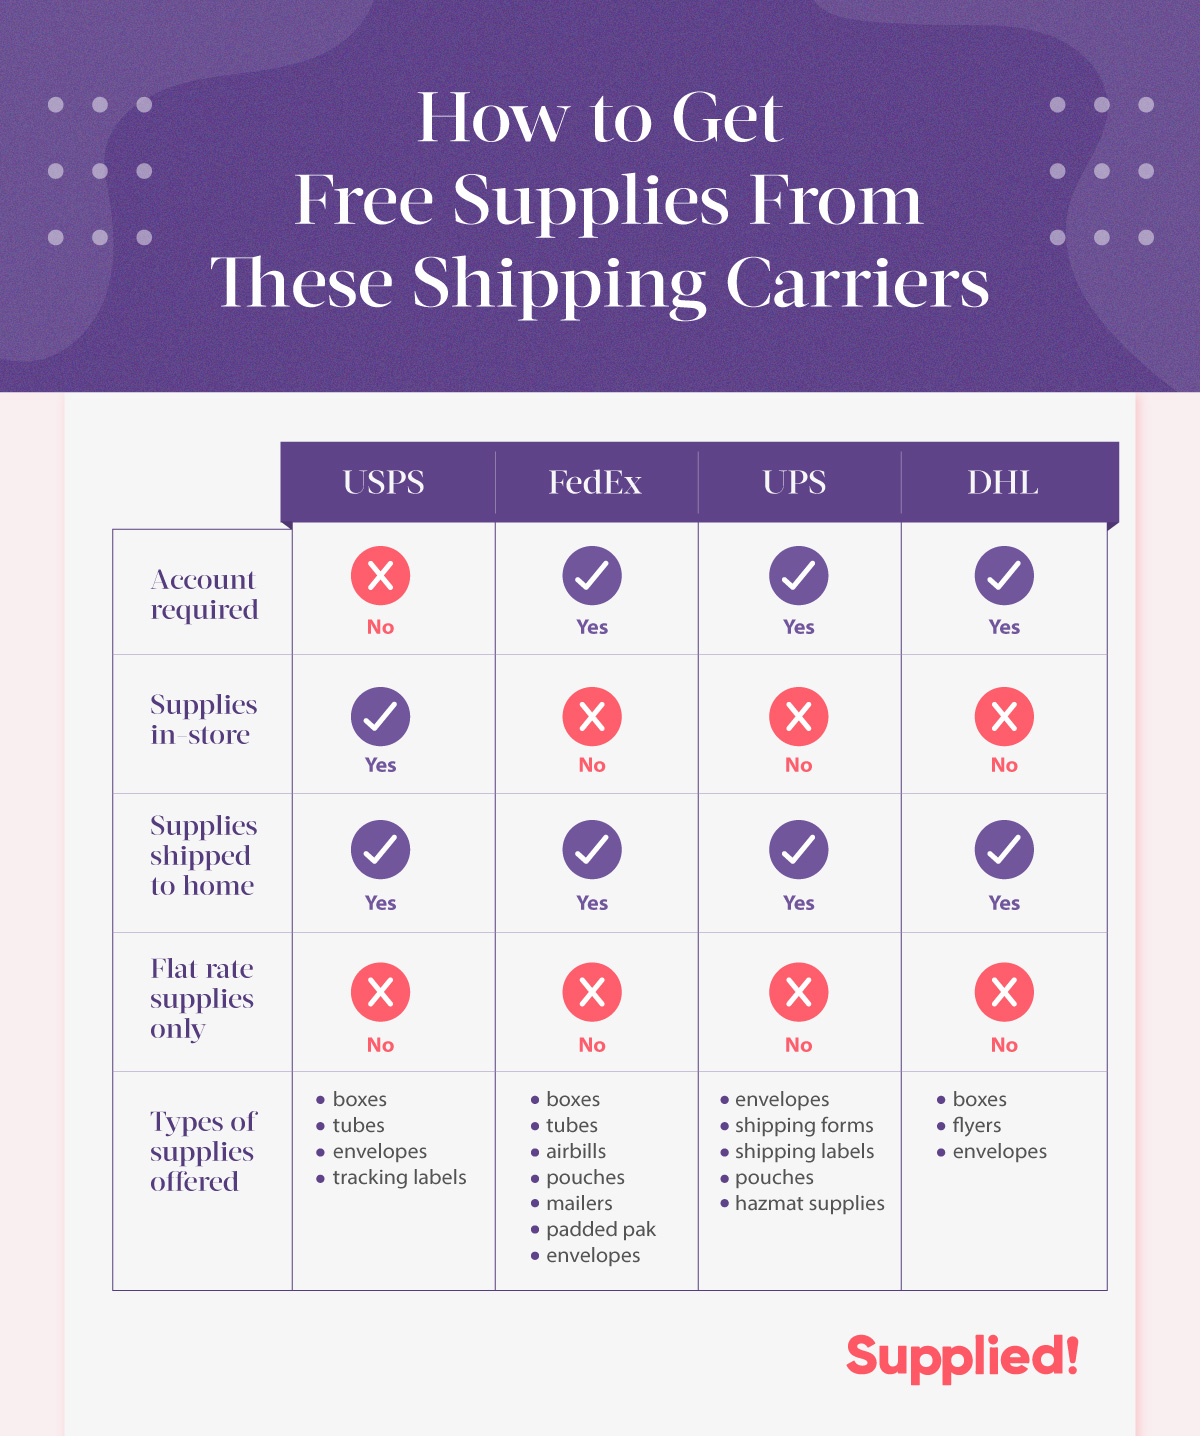 How to get free shipping supplies from USPS, FedEx, UPS, and DHL